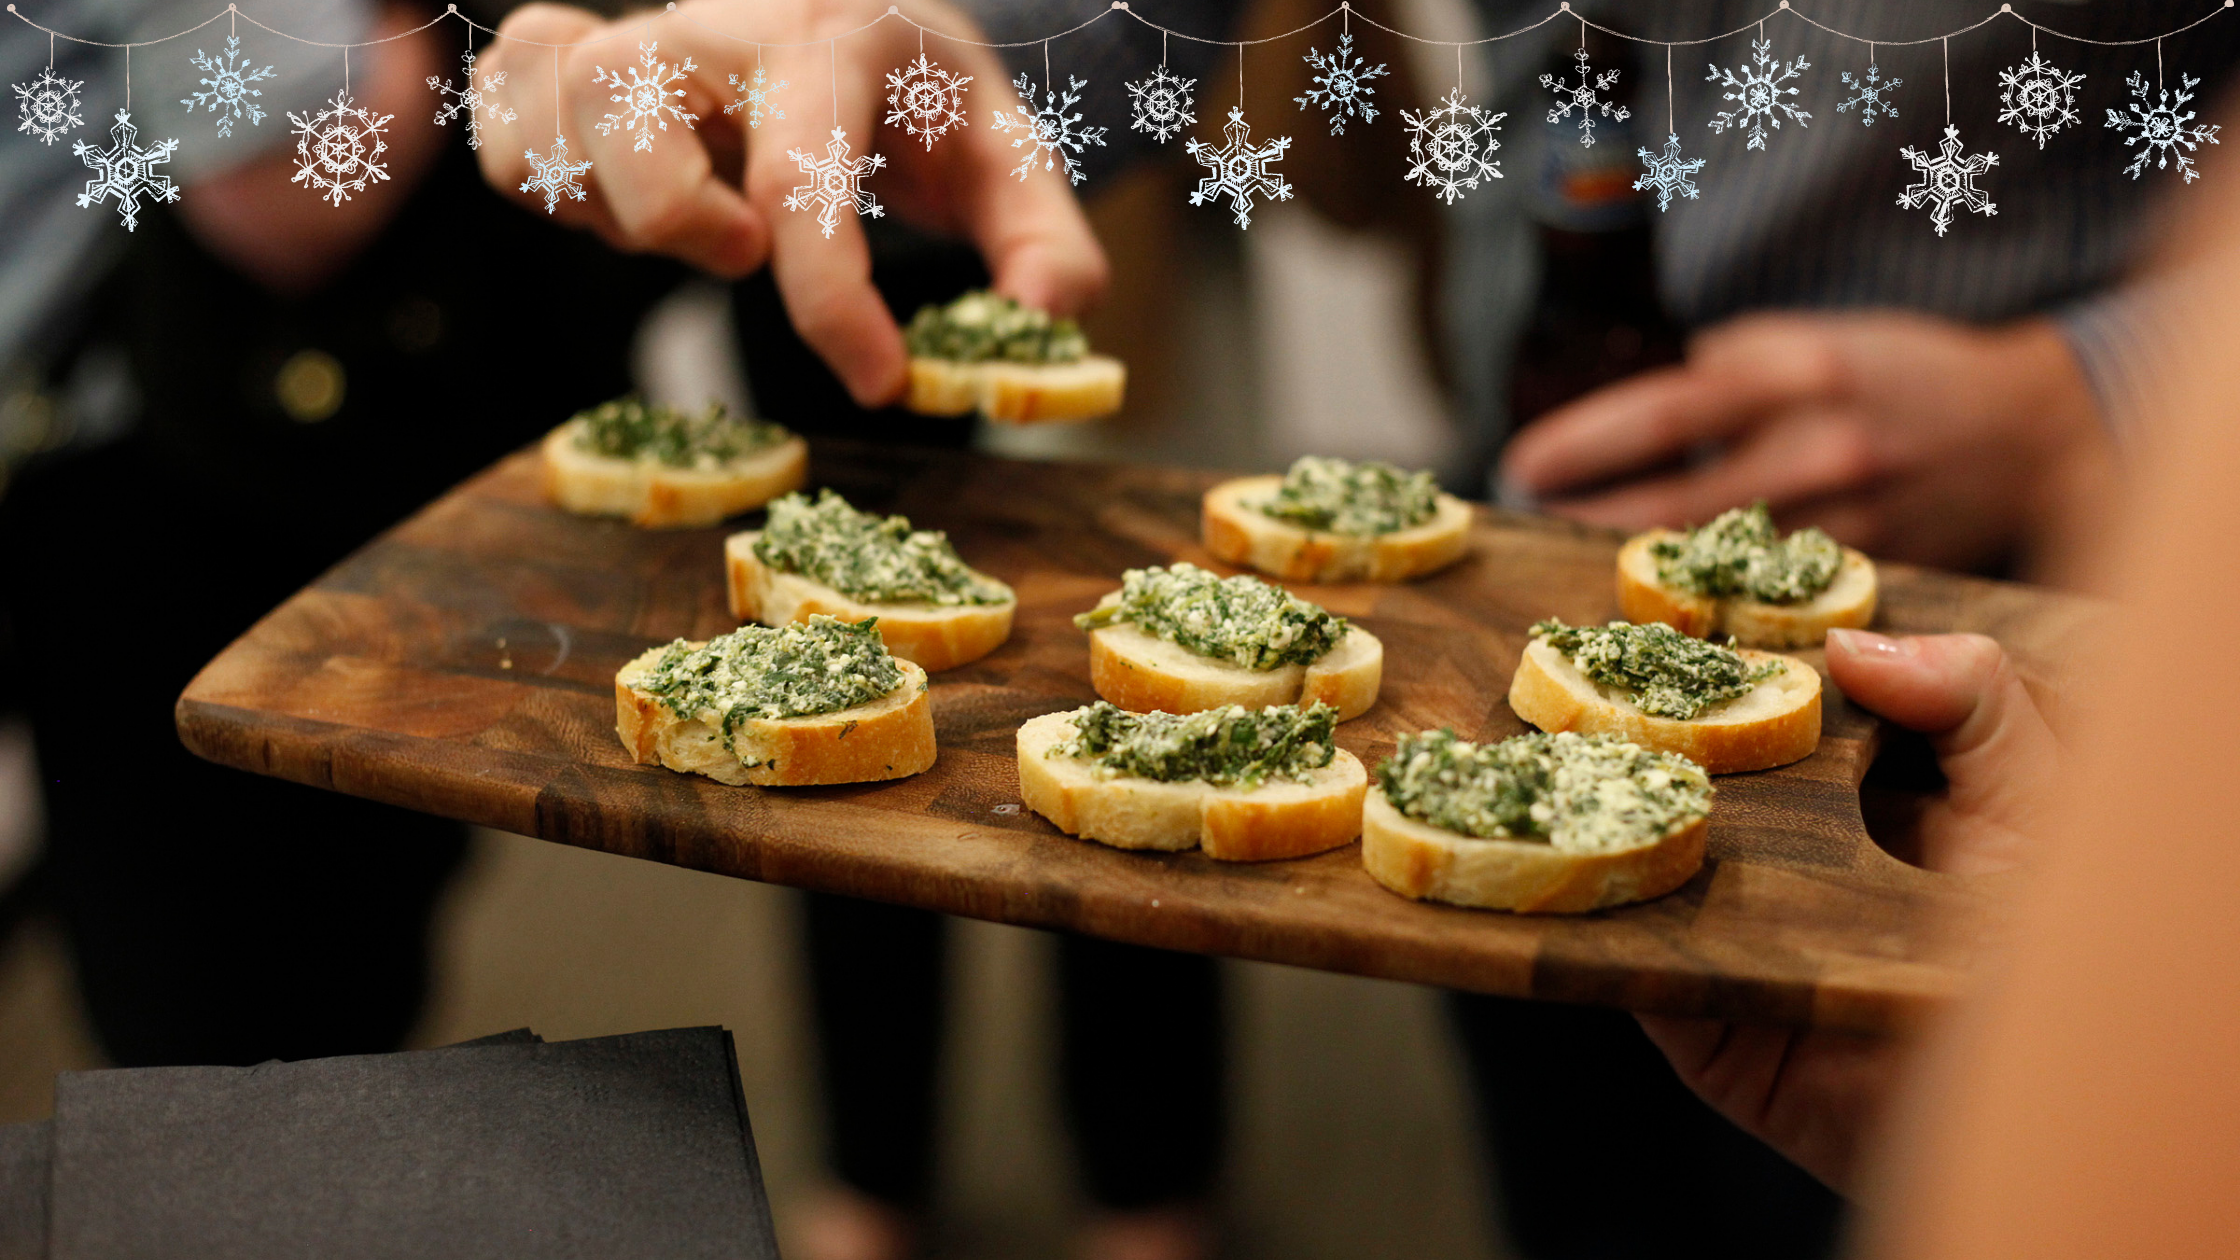 Easy crostini appetizer for thanksgiving and Christmas holiday gathering or party